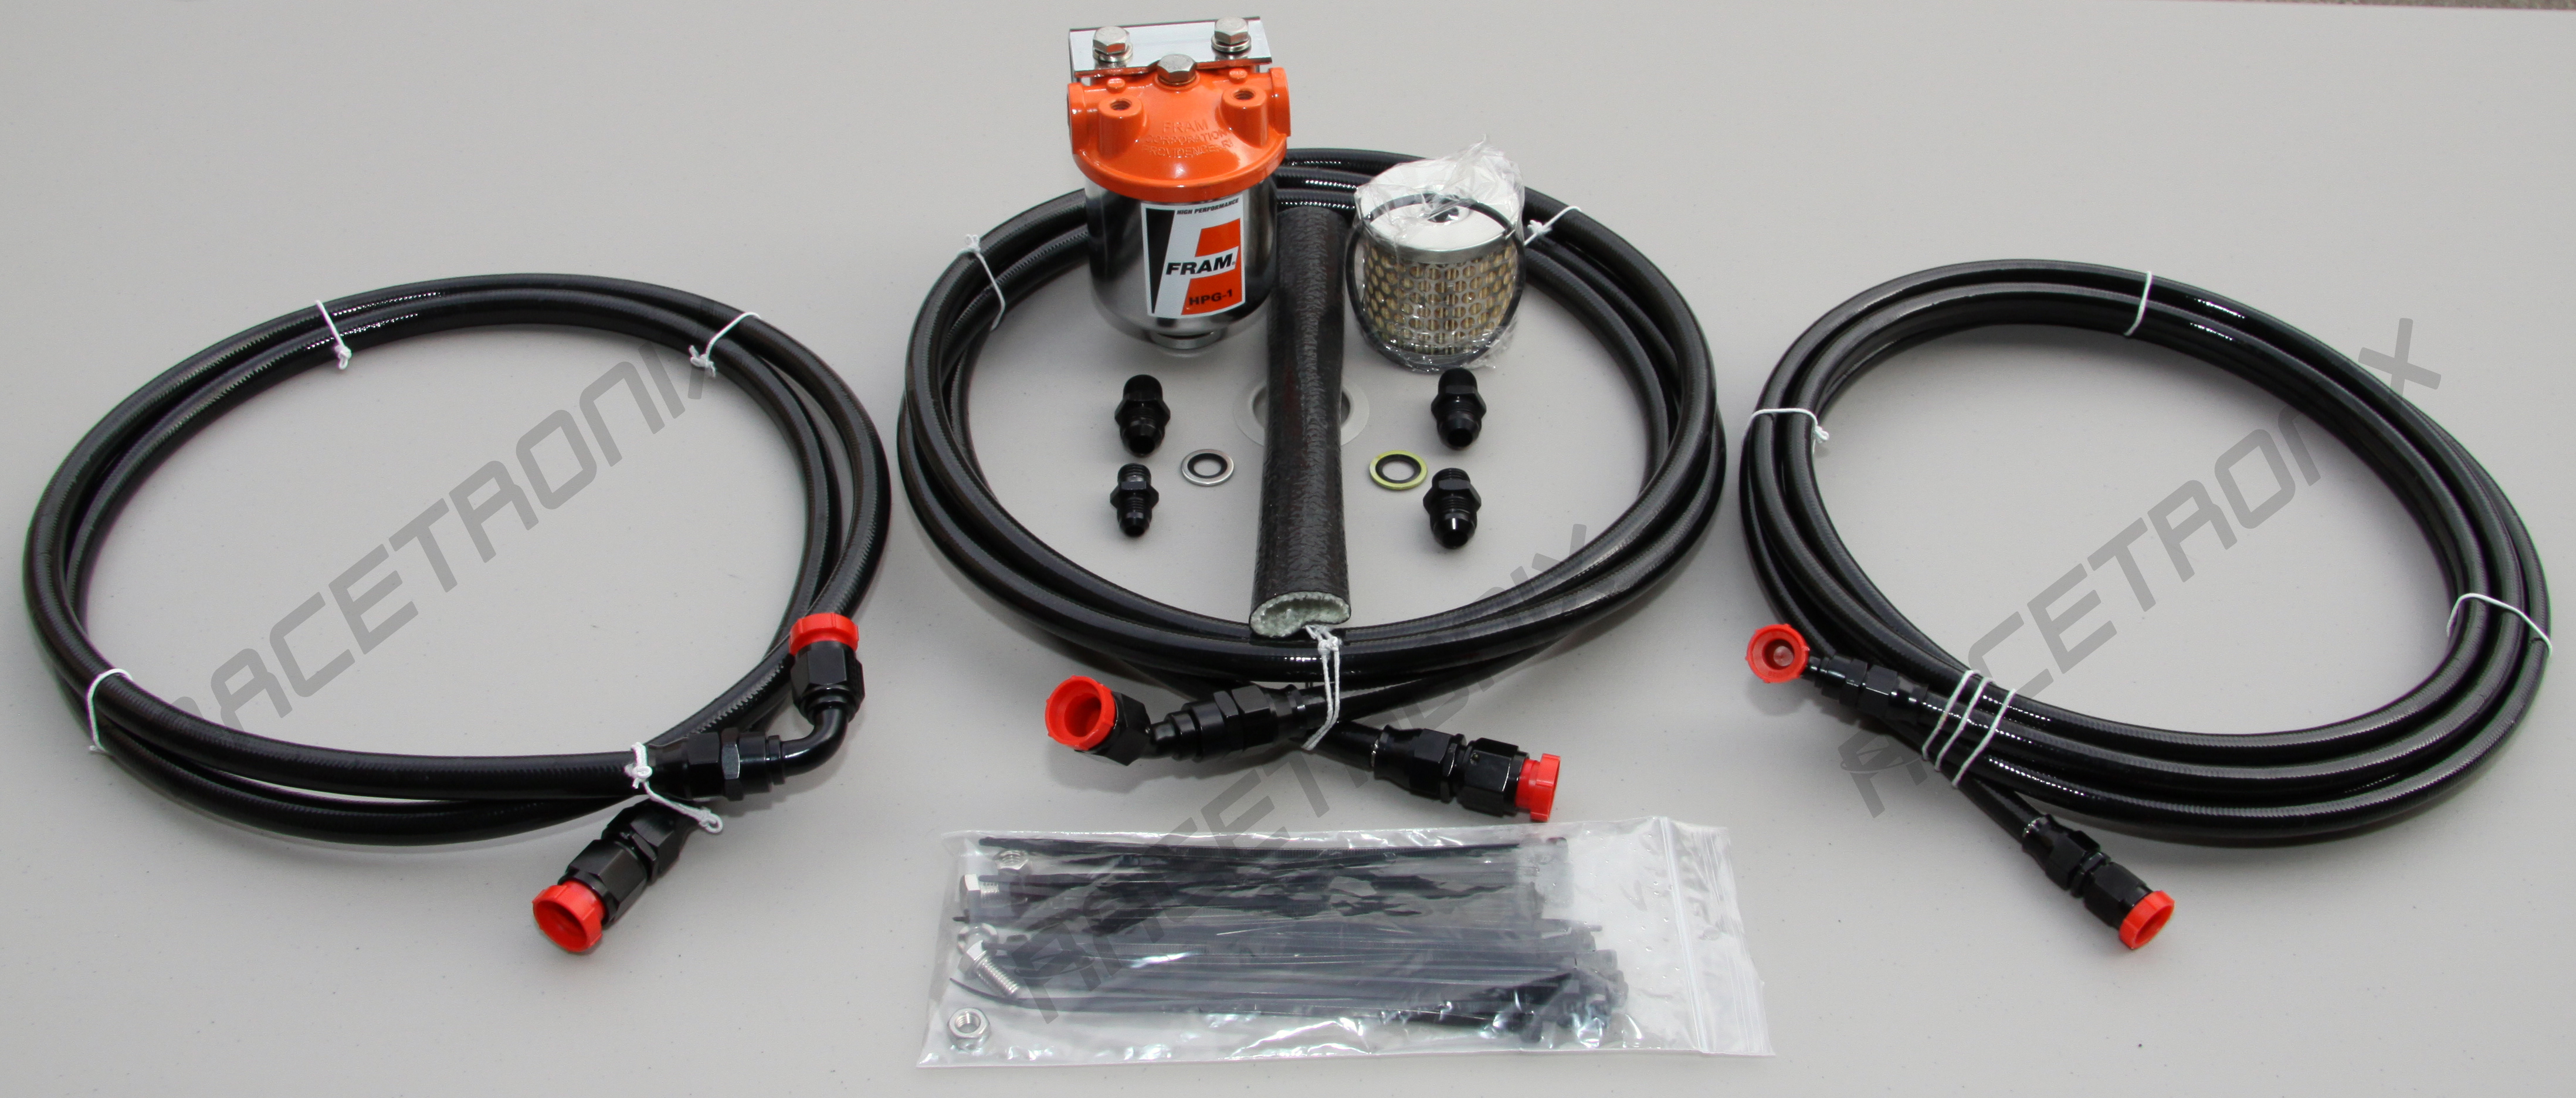 Racetronix Teflon E85 Gas Fuel Line Kit Performance Filter Fram After Testing Many Housings And Elements We Have Found That The Type Housing Fitted With Awix Element Provides Superior